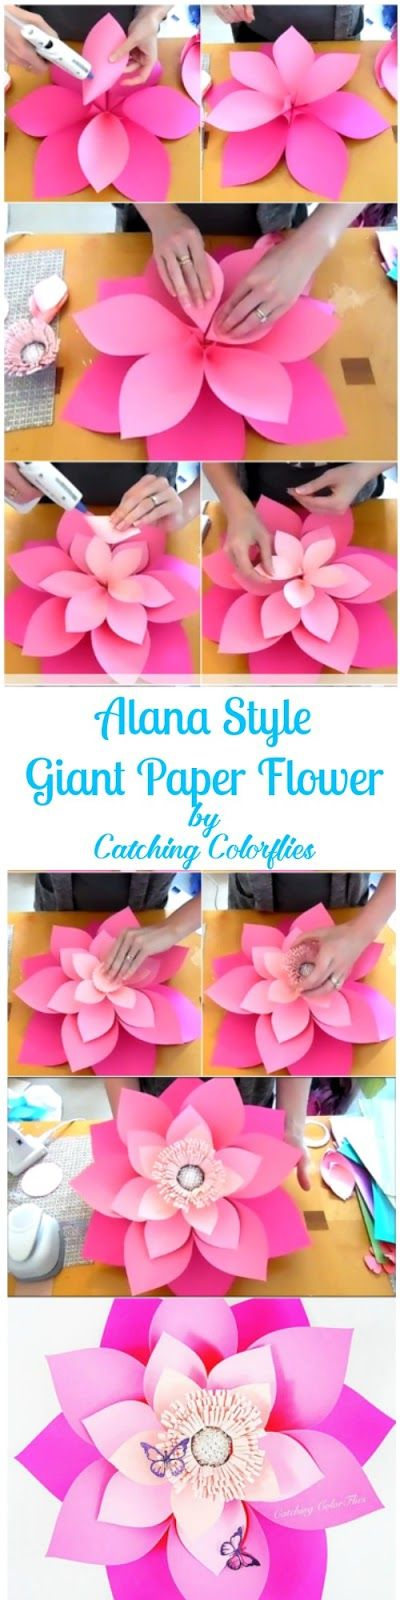 How to make giant paper flowers step by step tutorial pinterest how to make paper giant flowers diy mightylinksfo